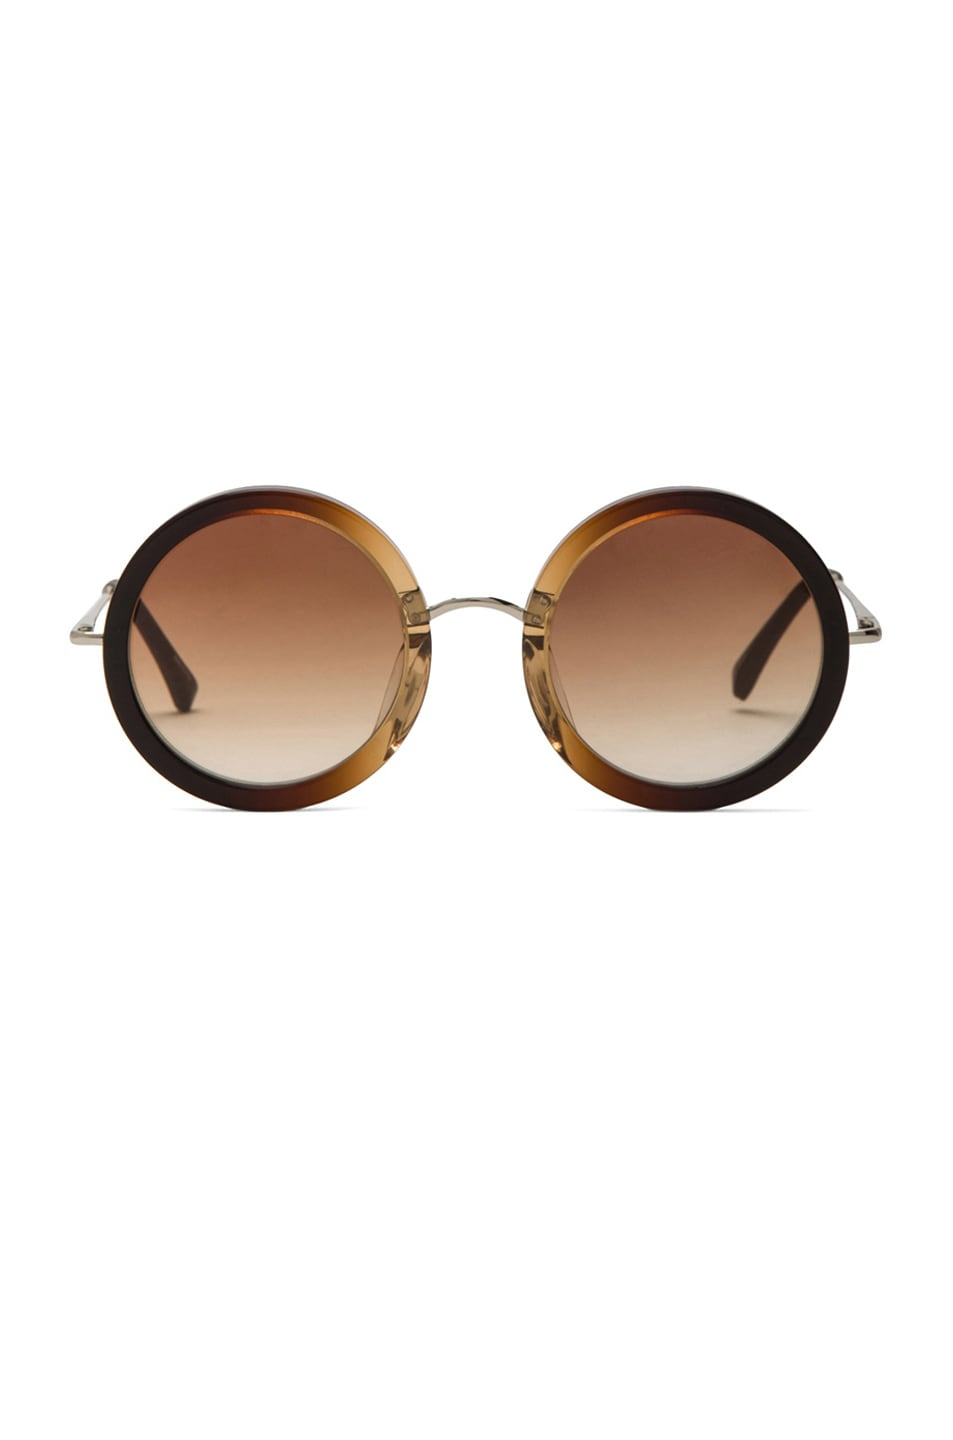 Image 1 of The Row Signature Circle Sunglasses in Molasses Gradient